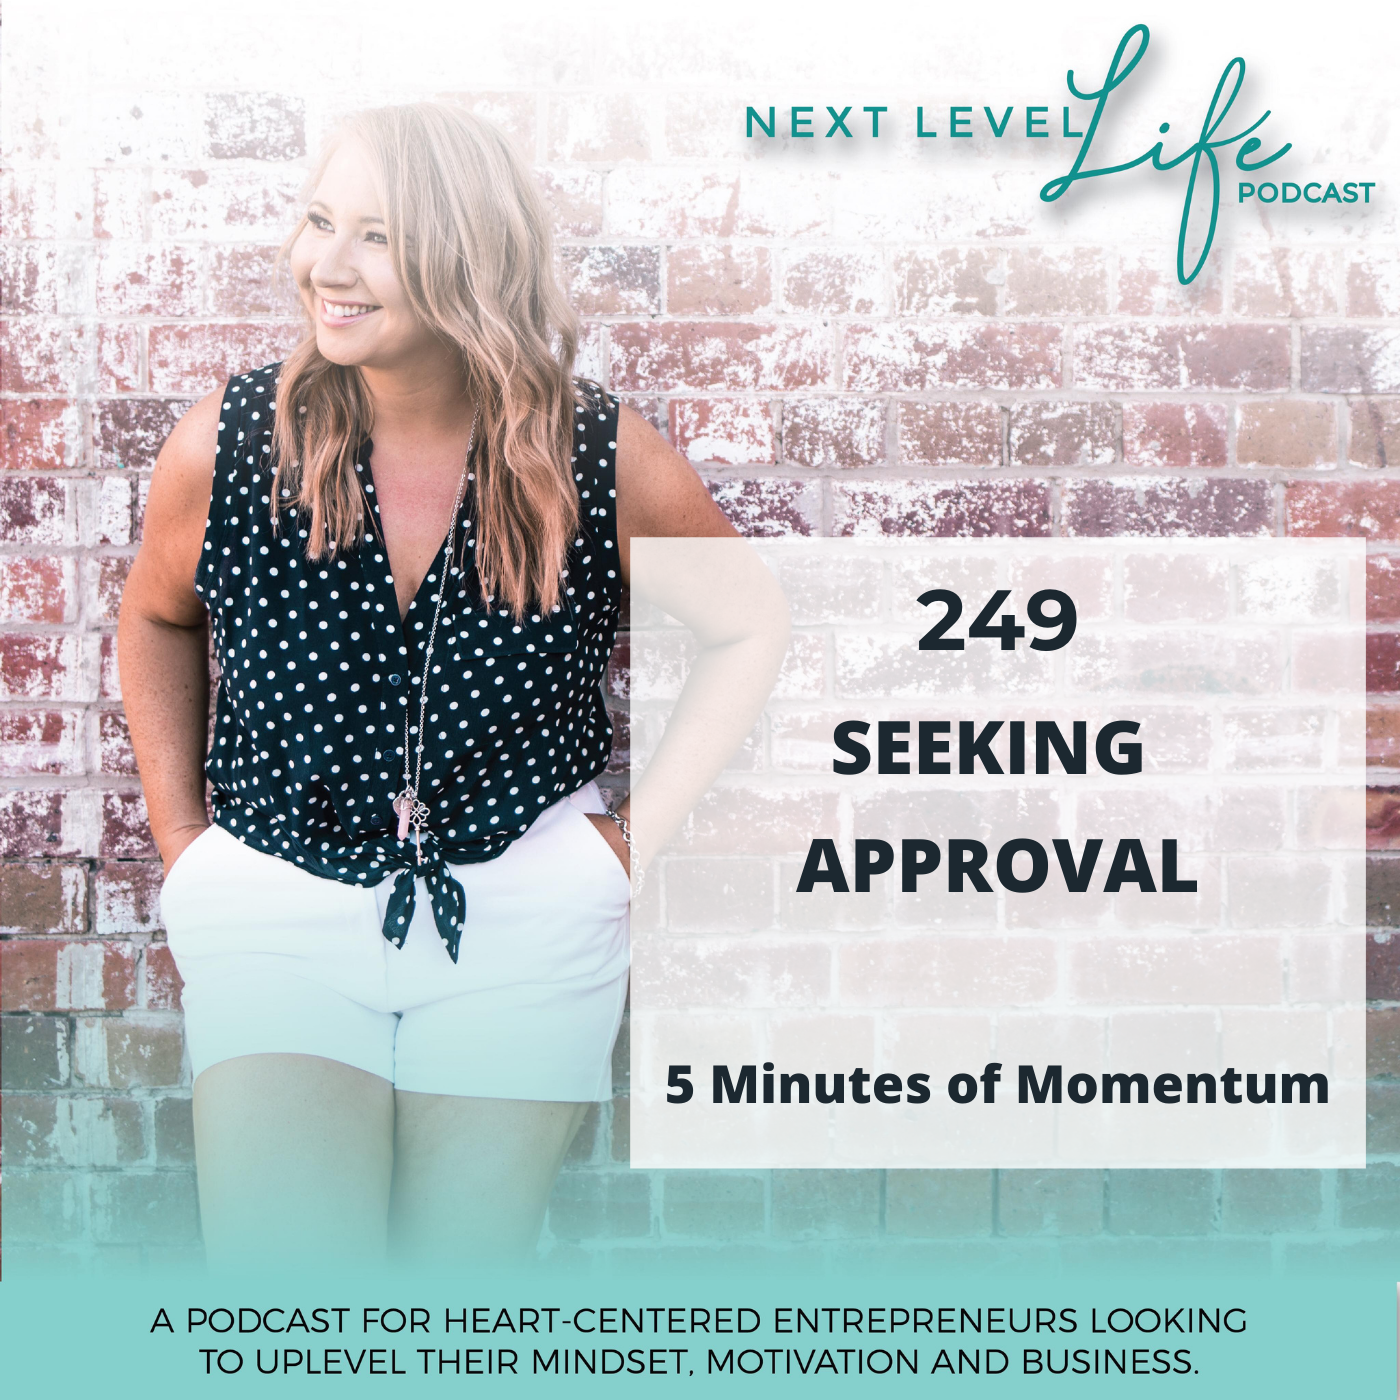 THE NEXT LEVEL LIFE PODCAST